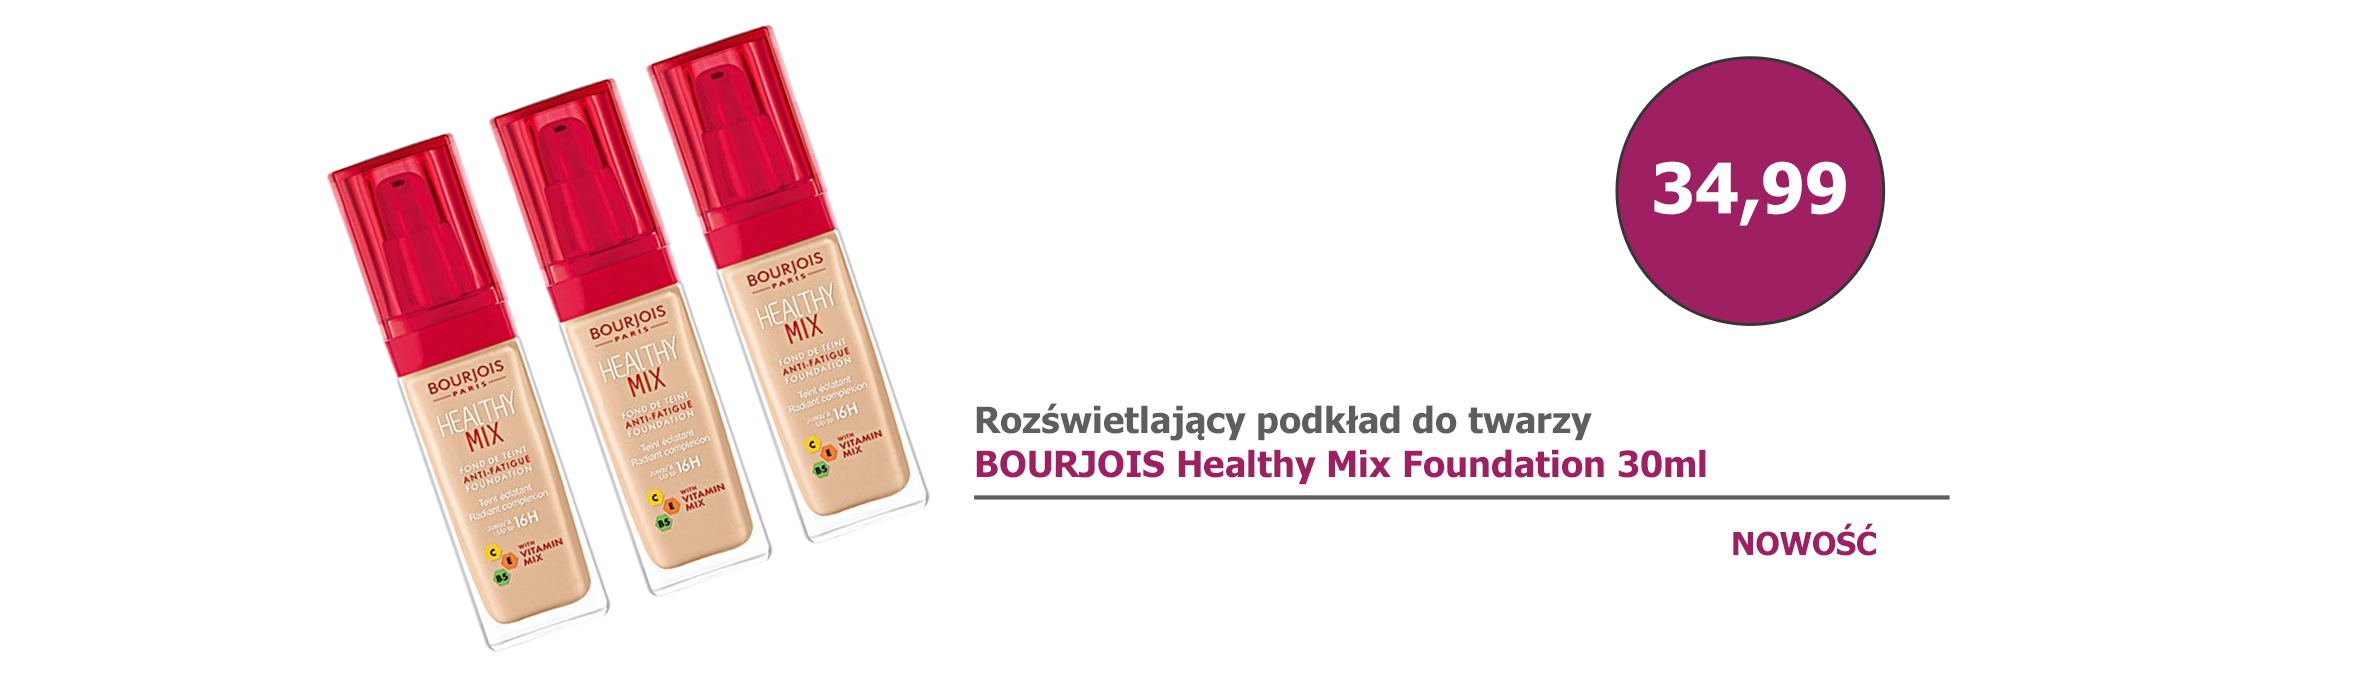 NOWOŚĆ - BOURJOIS HEALTHY MIX FOUNDATION SPF10 30ml